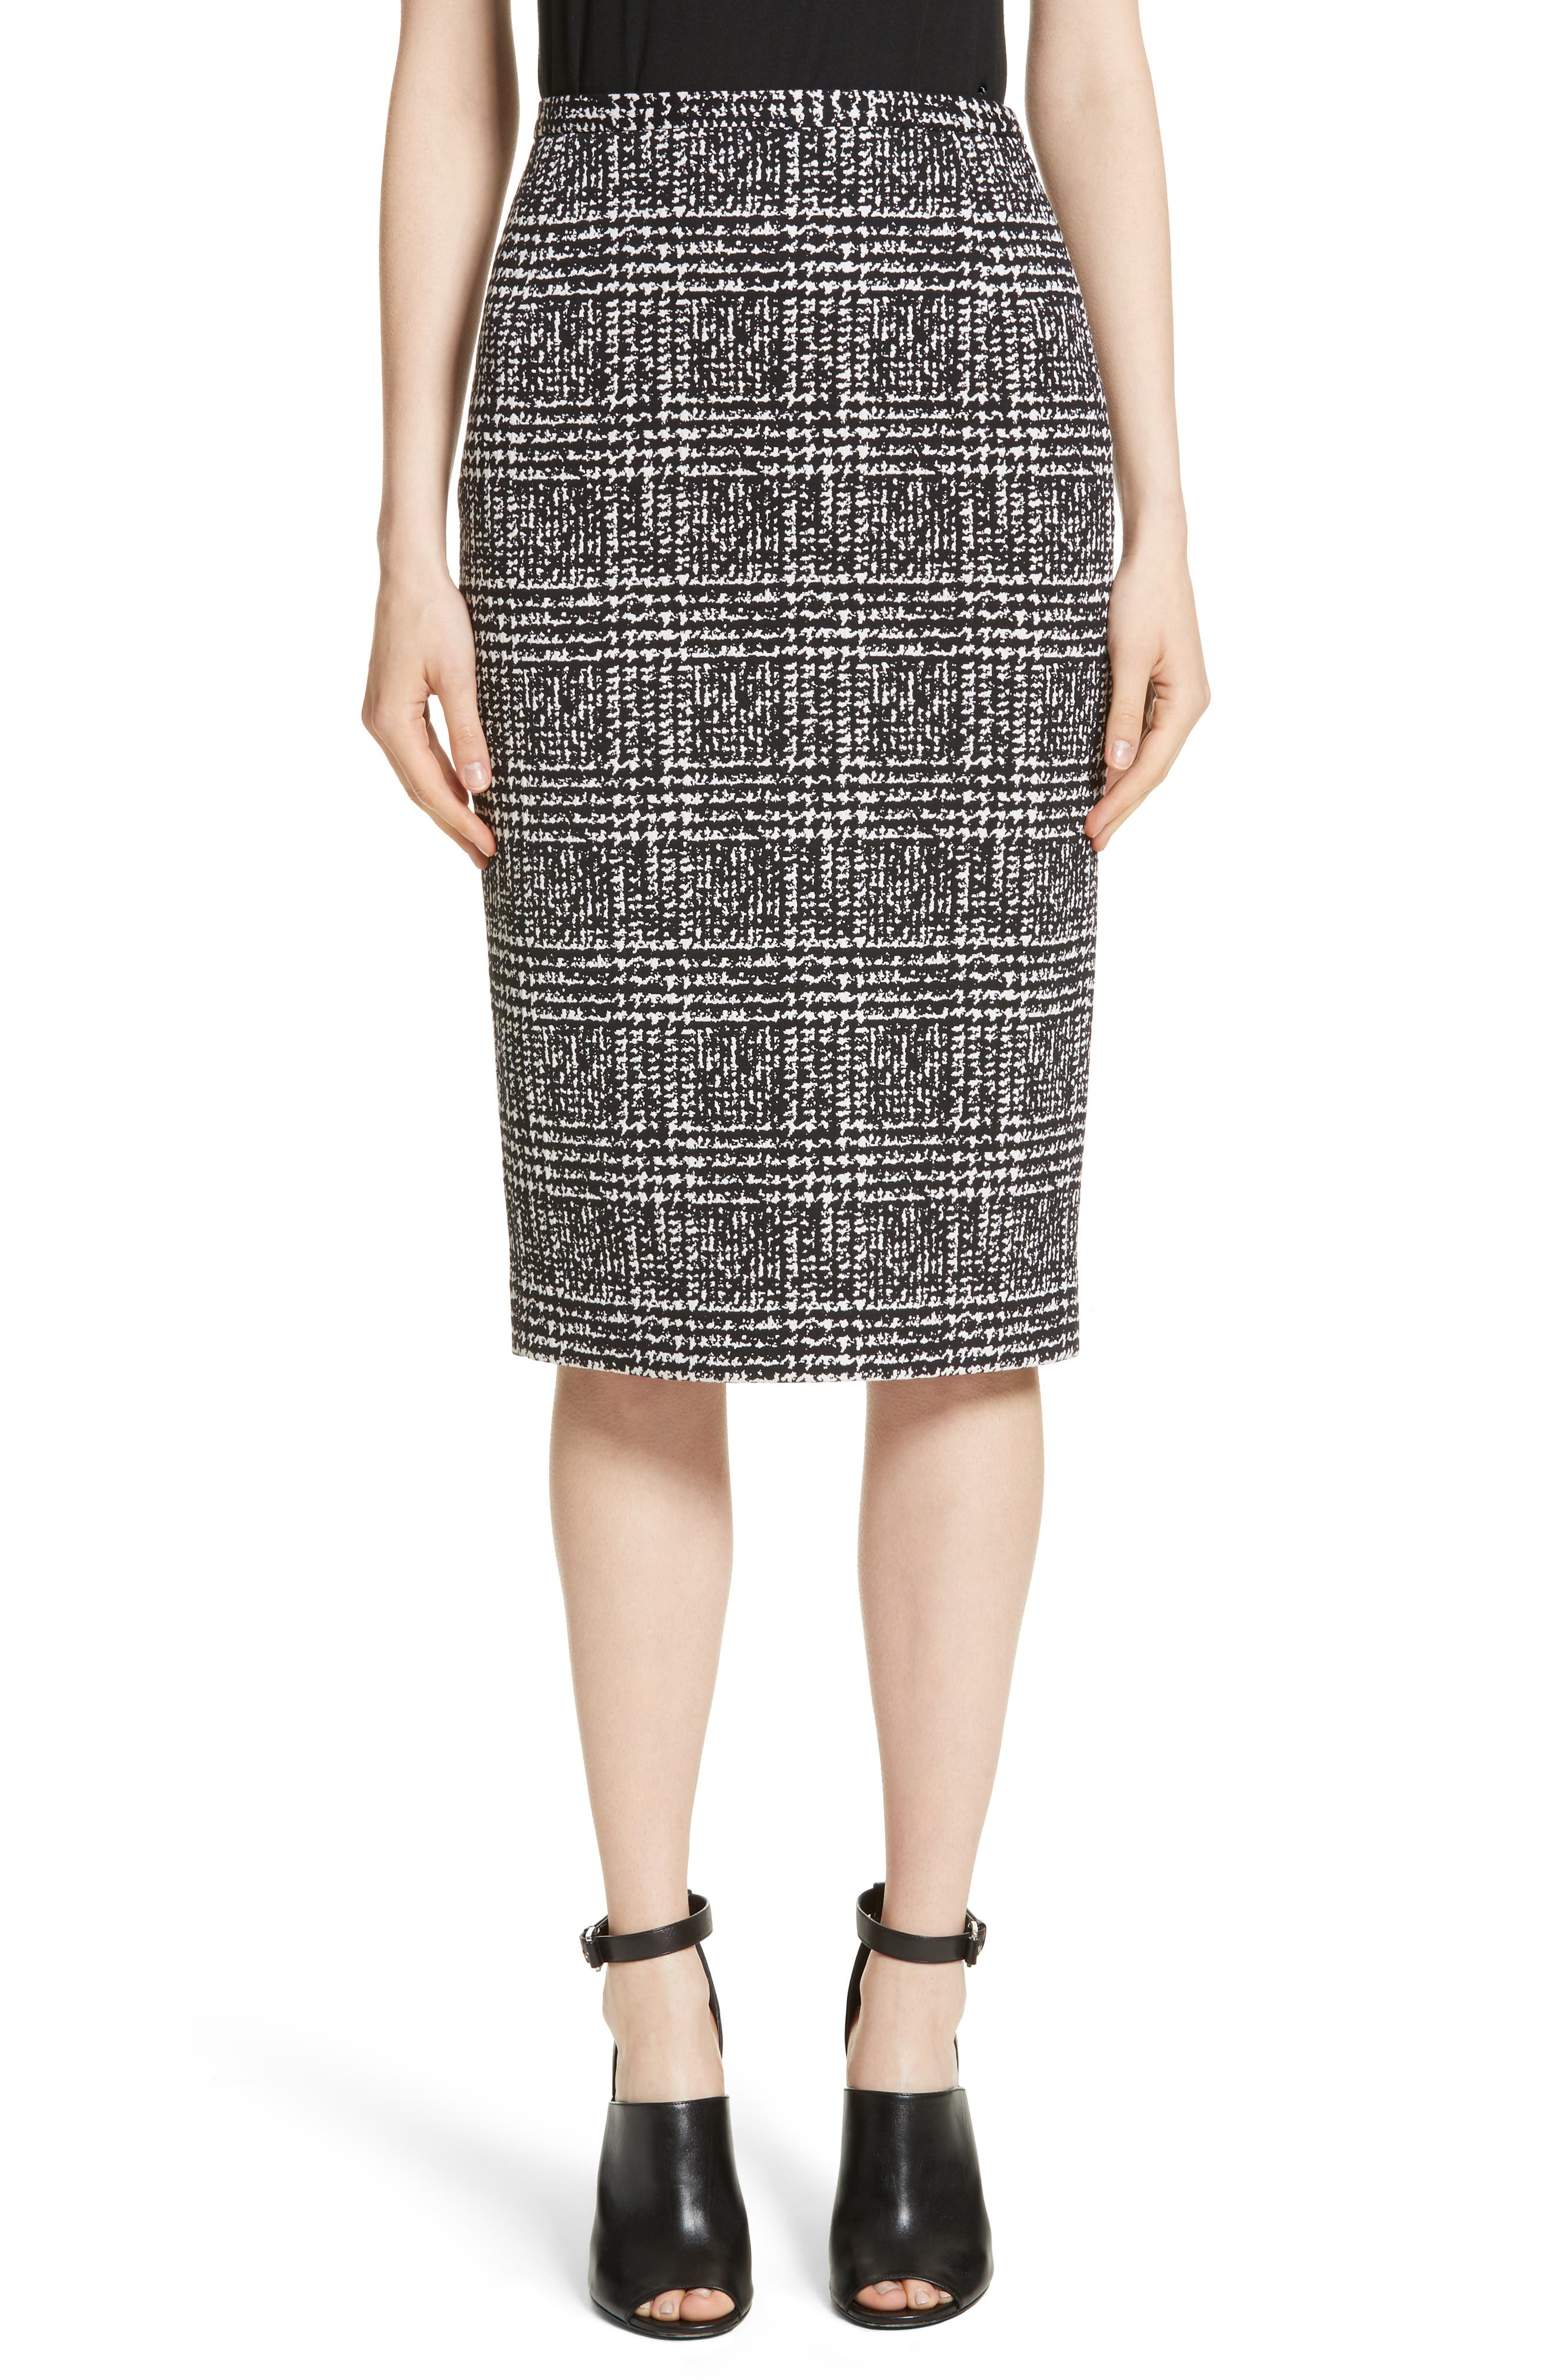 Alternate Image 1 Selected - Michael Kors Glen Plaid Stretch Jacquard Skirt